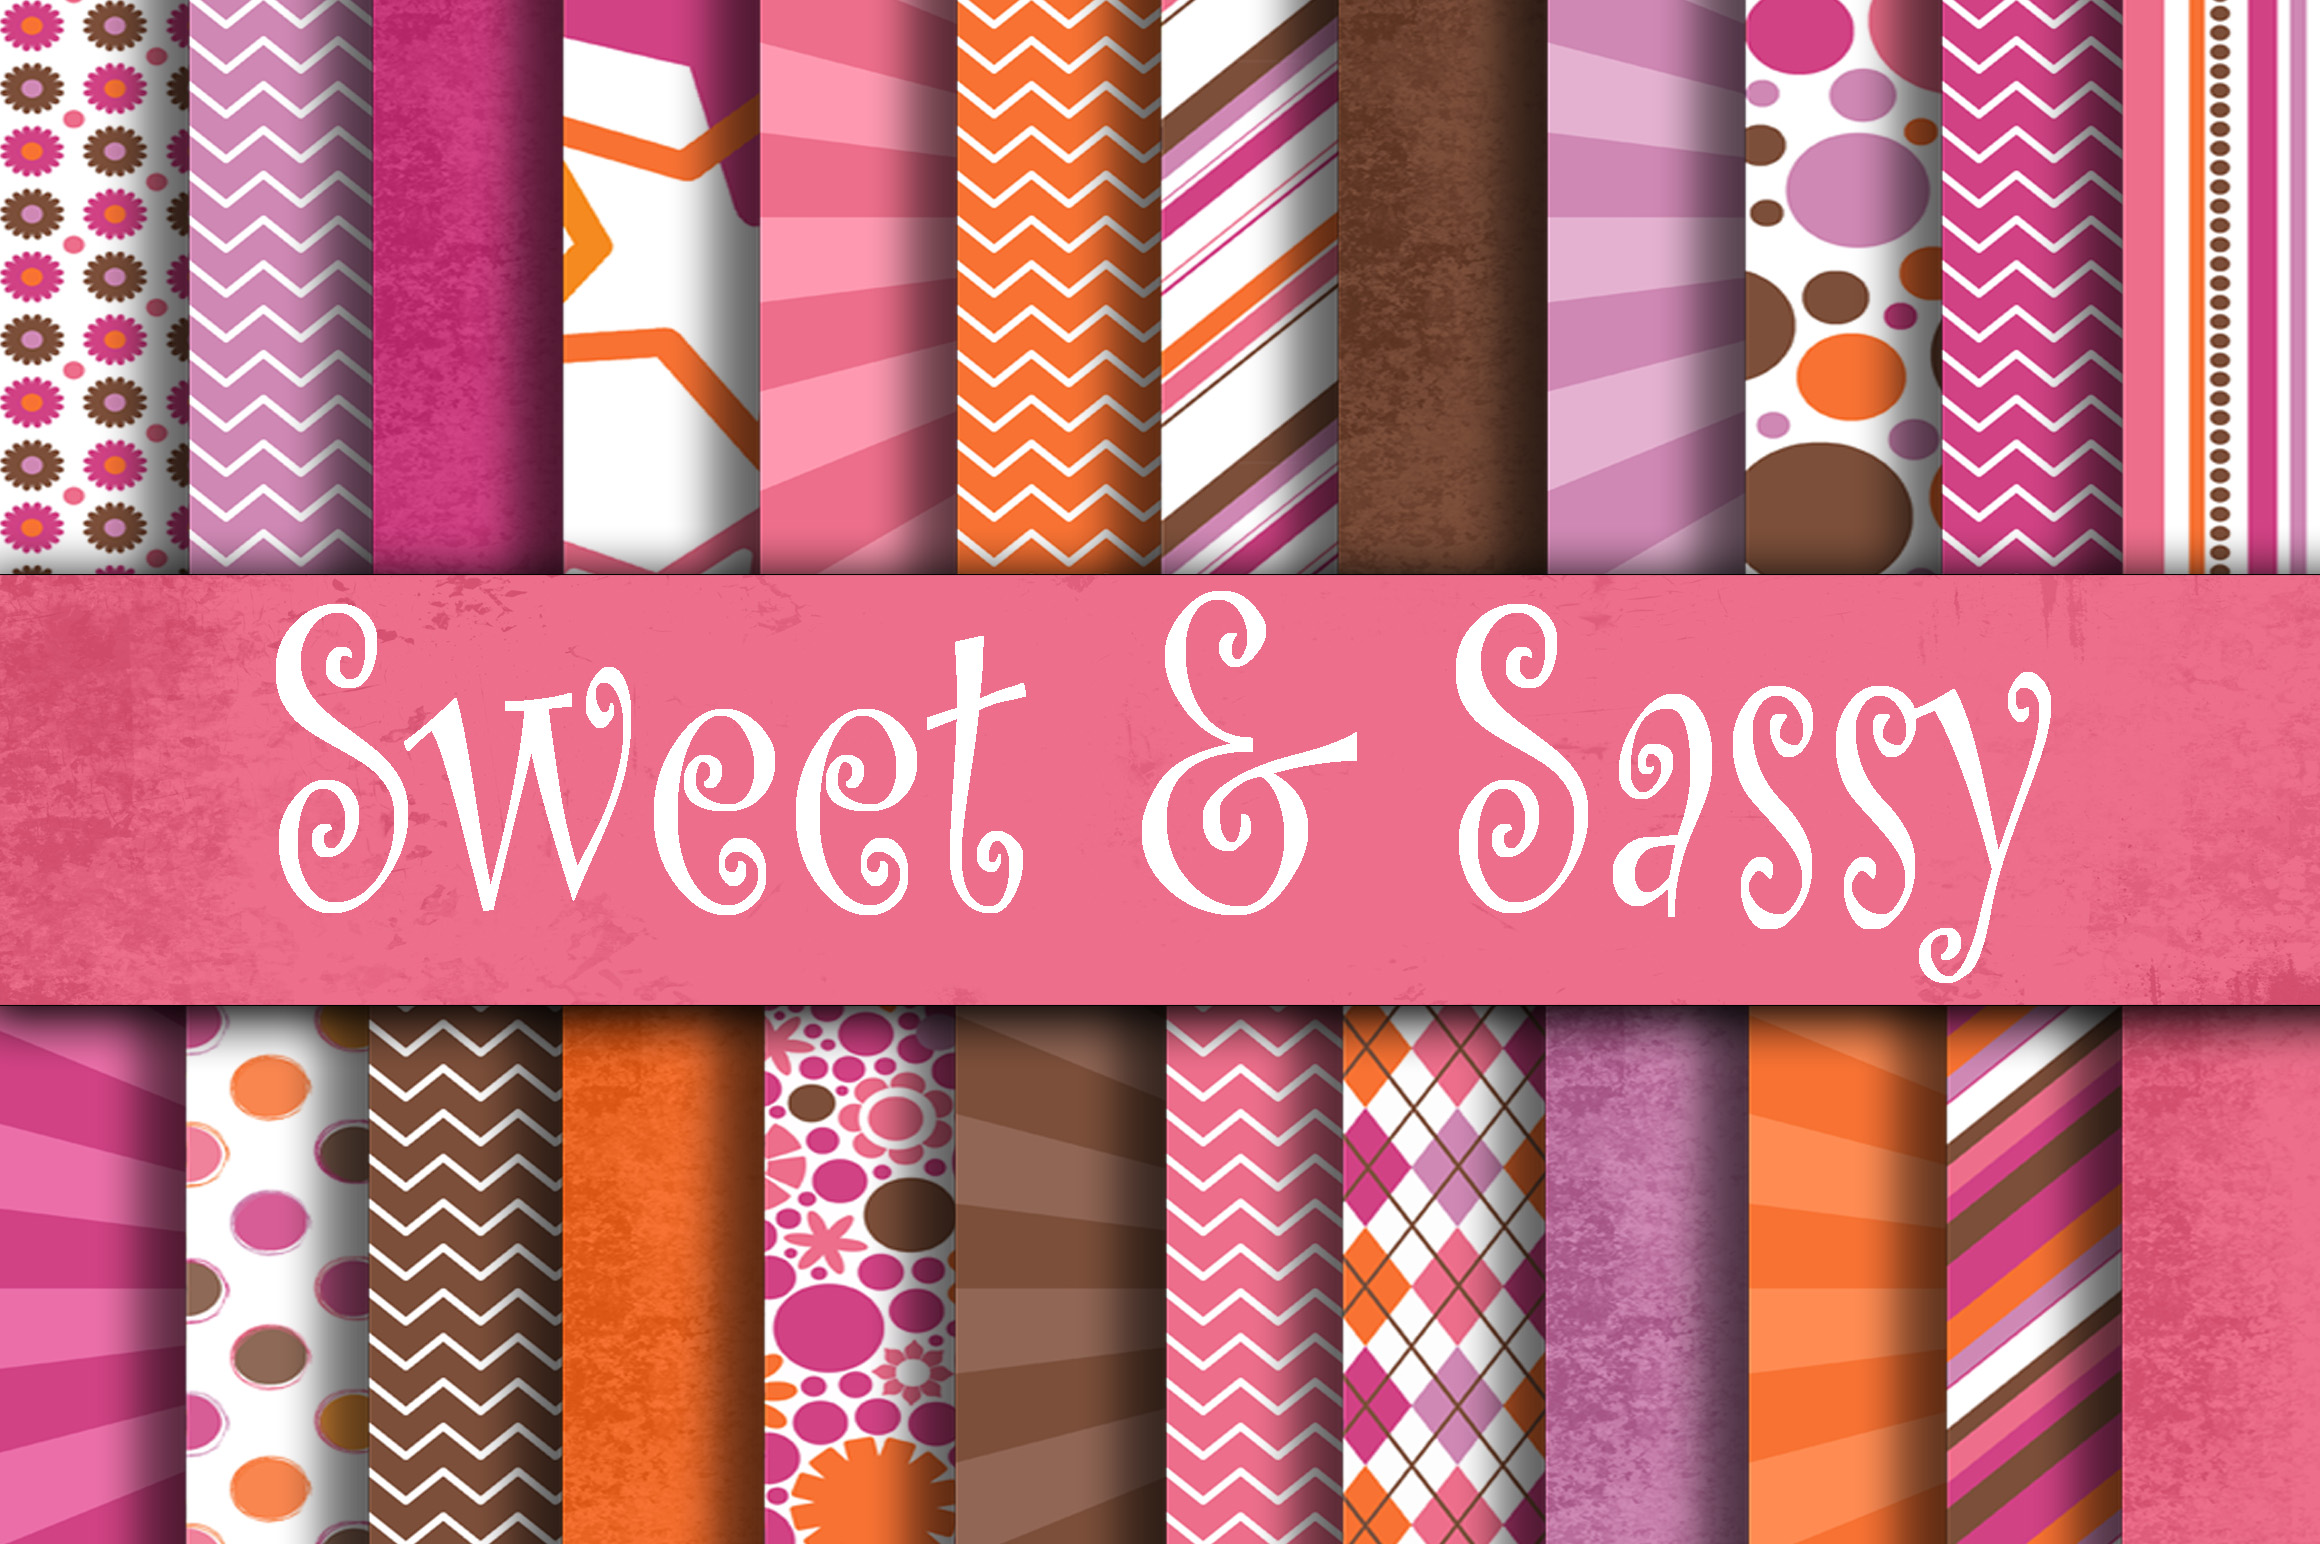 Sweet and Sassy Digital Paper Pack Graphic Backgrounds By oldmarketdesigns